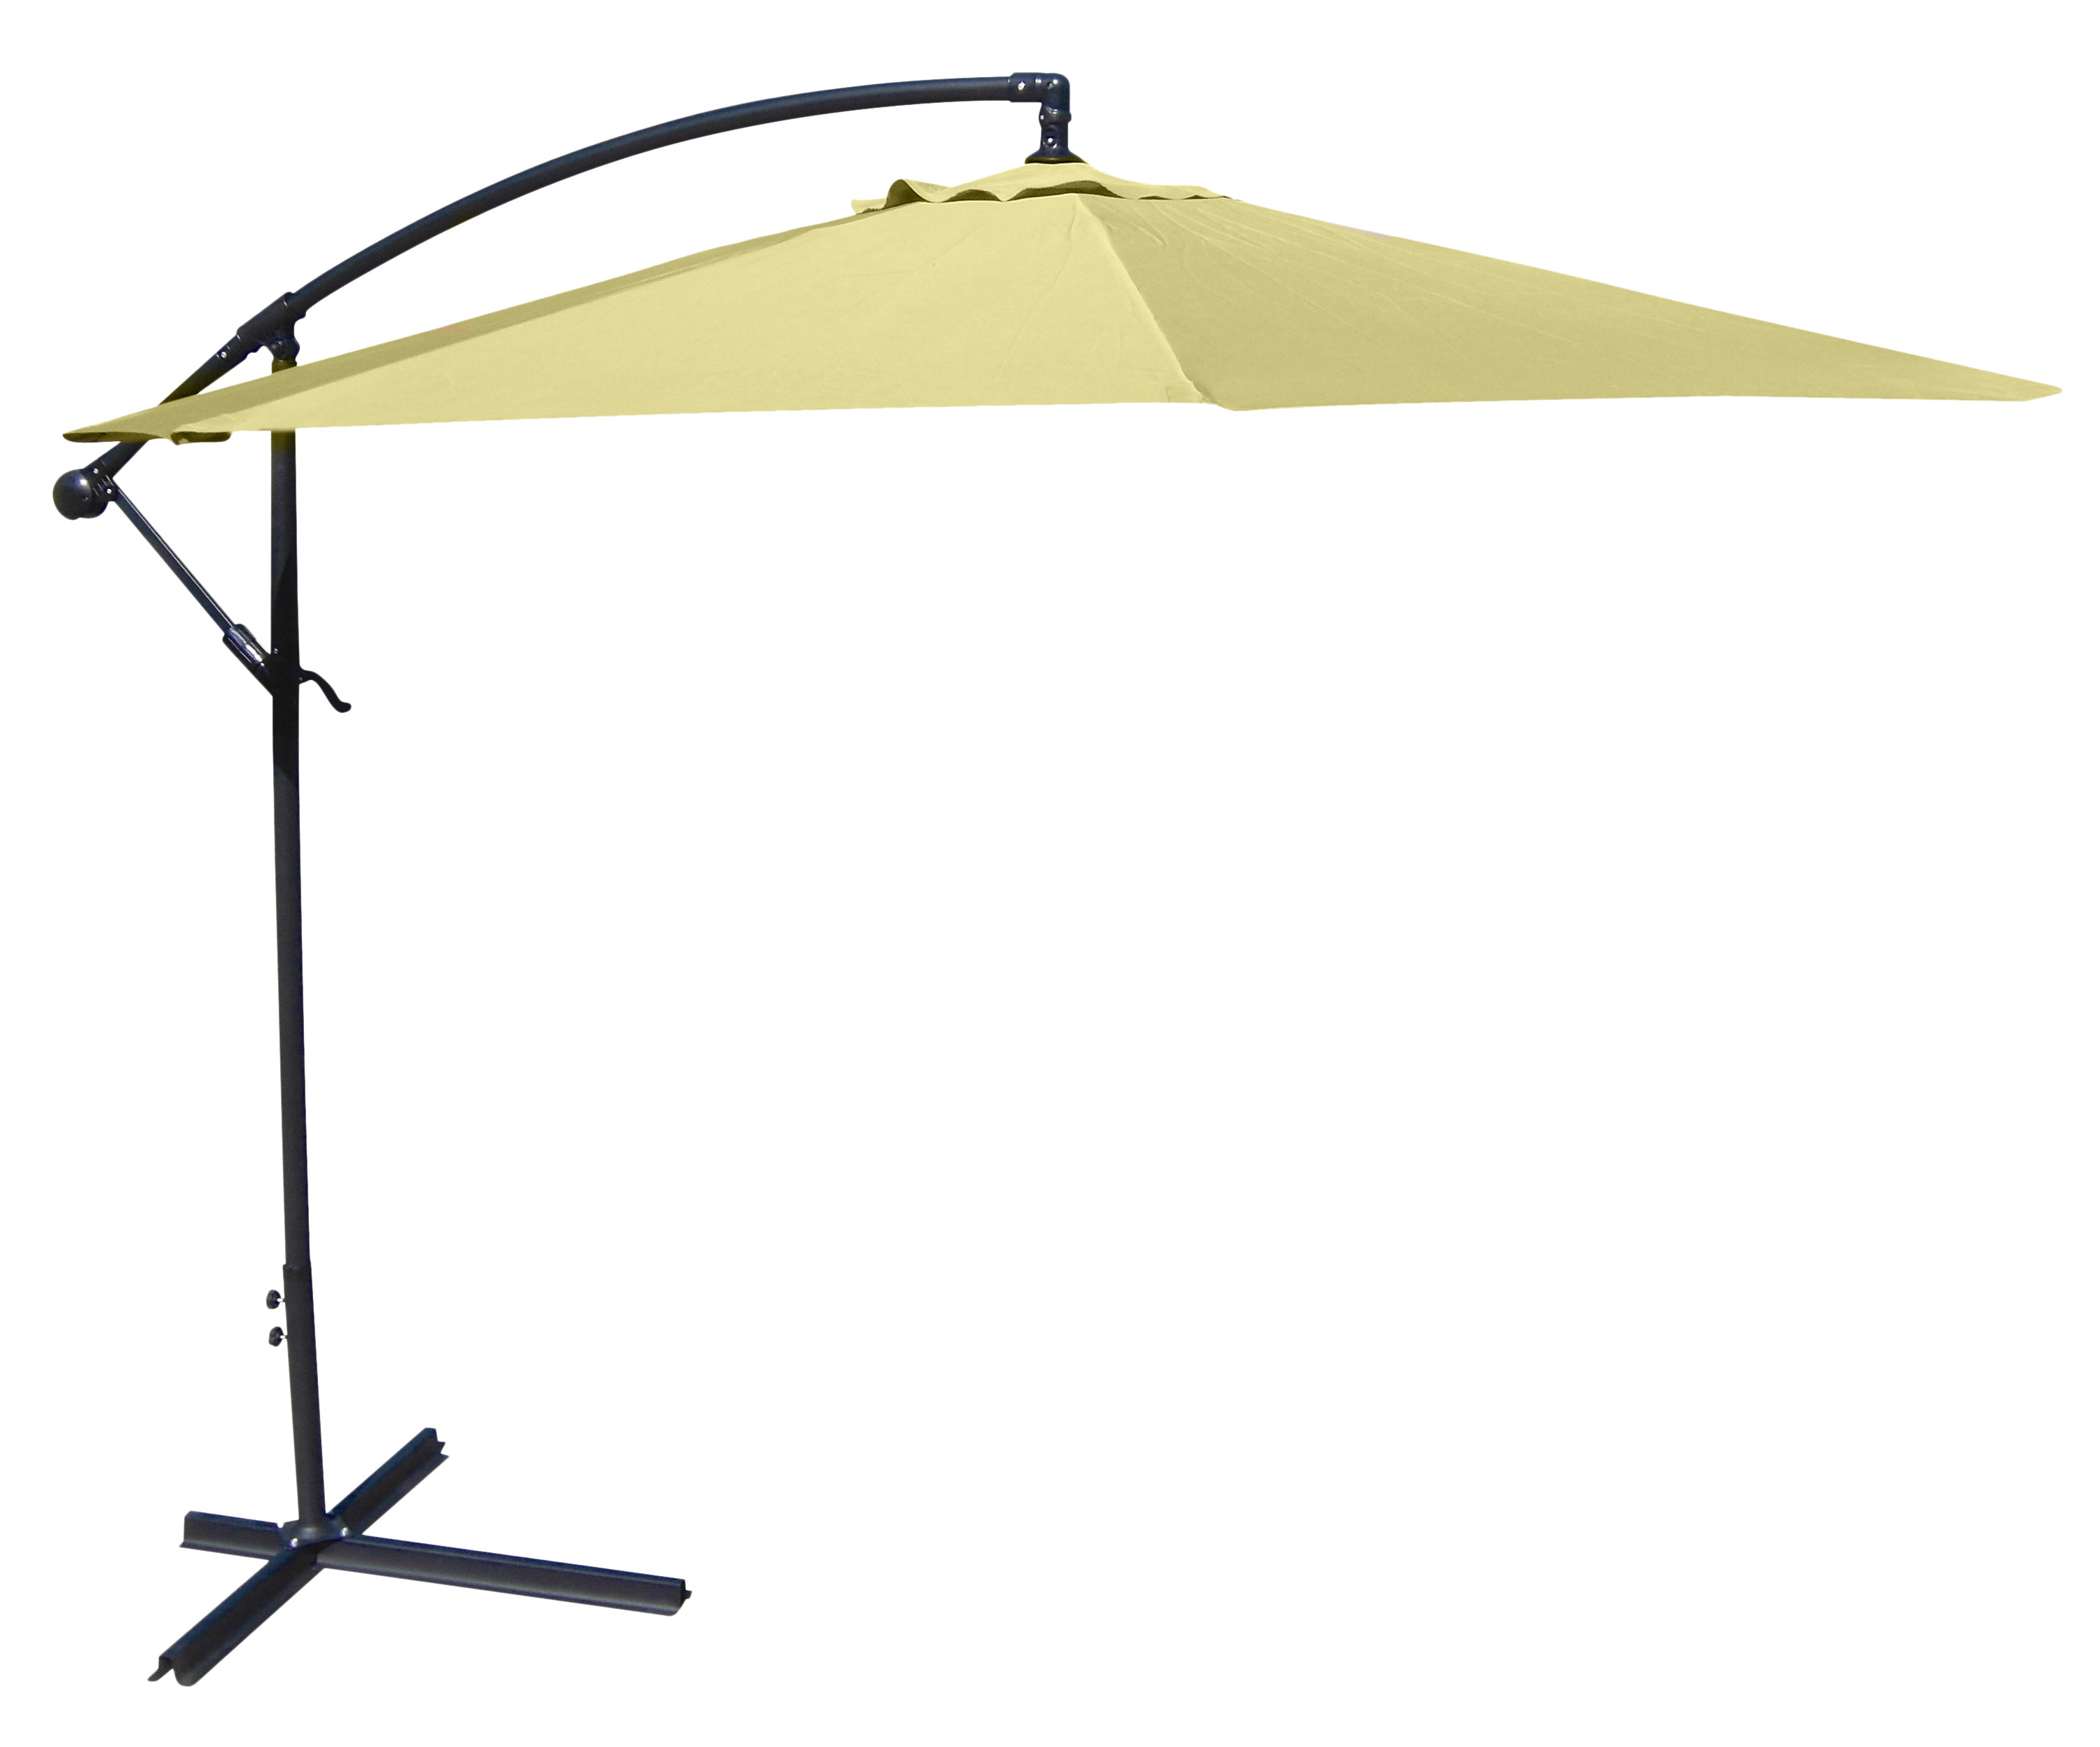 2019 Brayden Studio Trotman 10' Cantilever Umbrella Regarding Trotman Cantilever Umbrellas (Gallery 4 of 20)